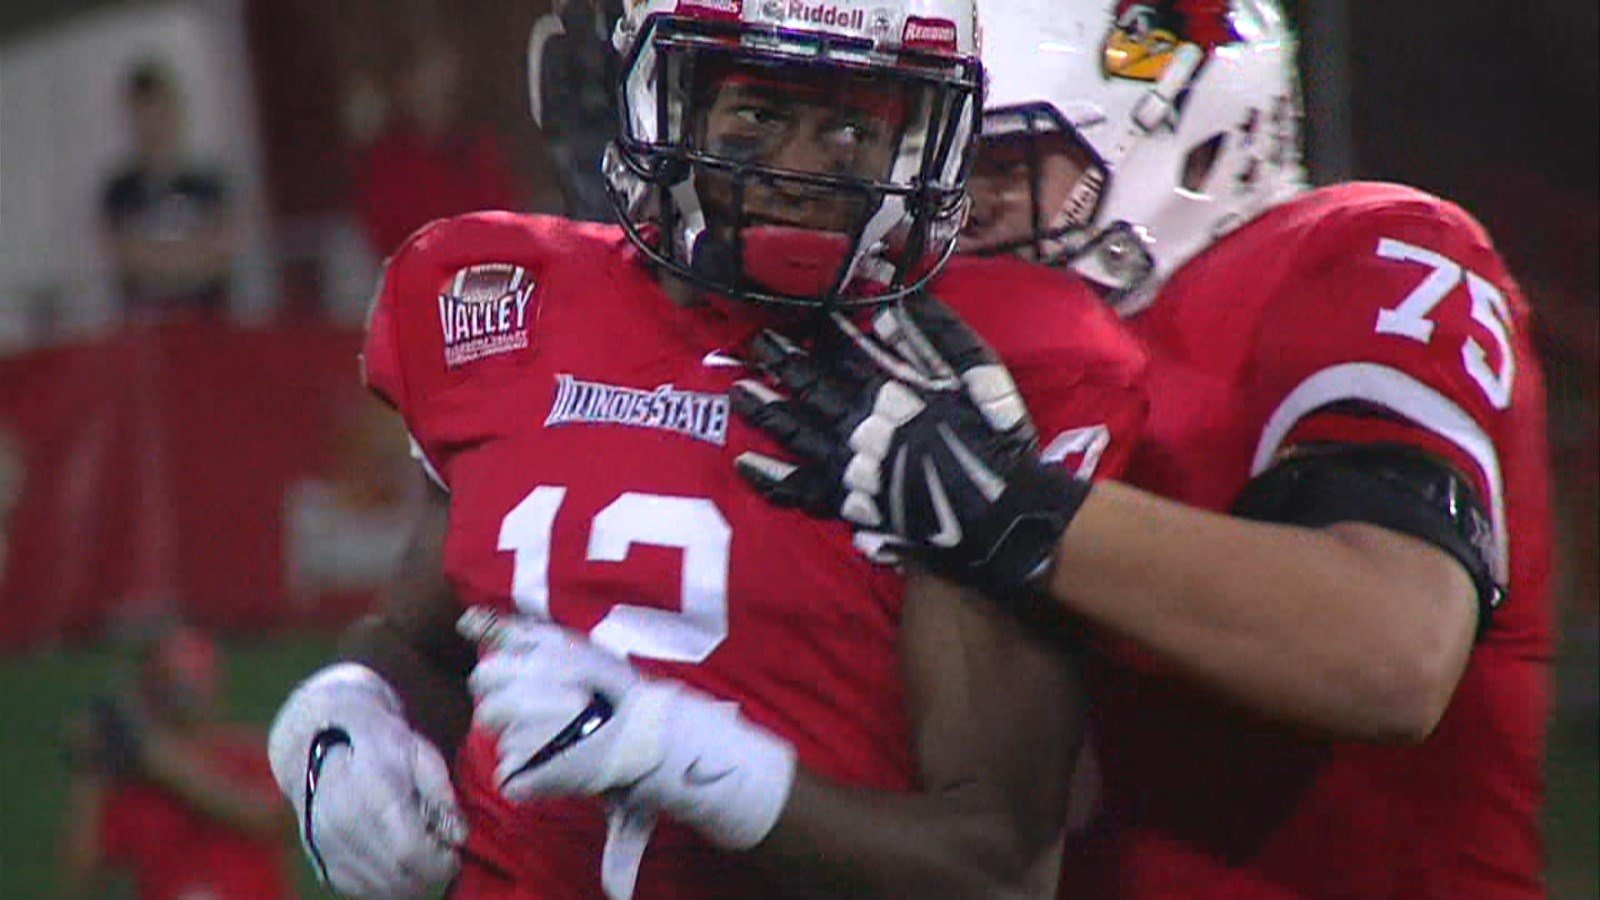 Senior receiver Christian Gibbs hauled in two touchdowns and 189 yards on Saturday against Indiana State.